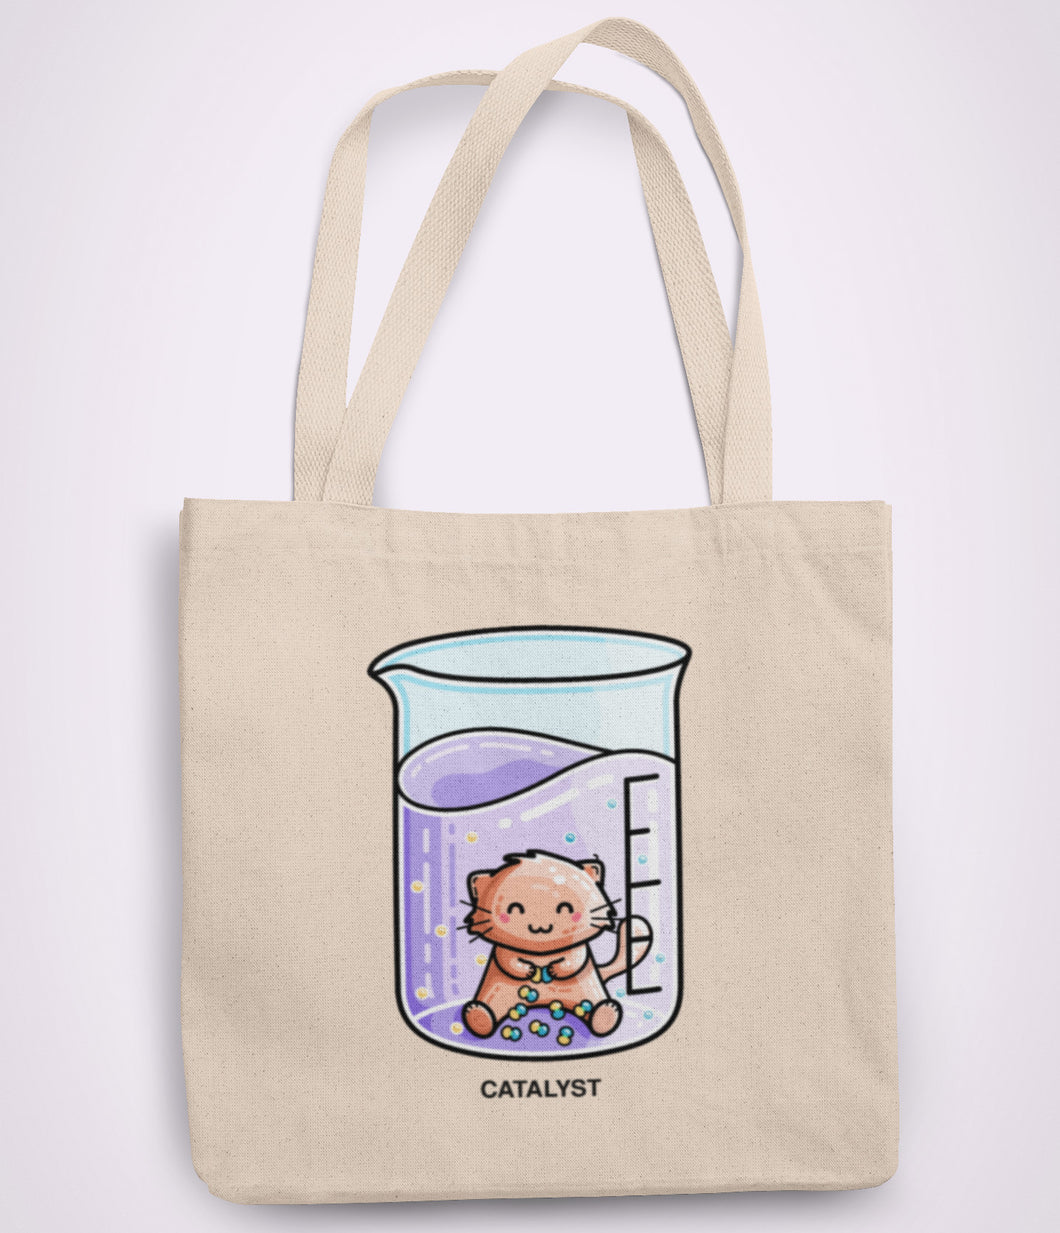 Catalyst Chemistry Pun Cute Recycled Tote Bag